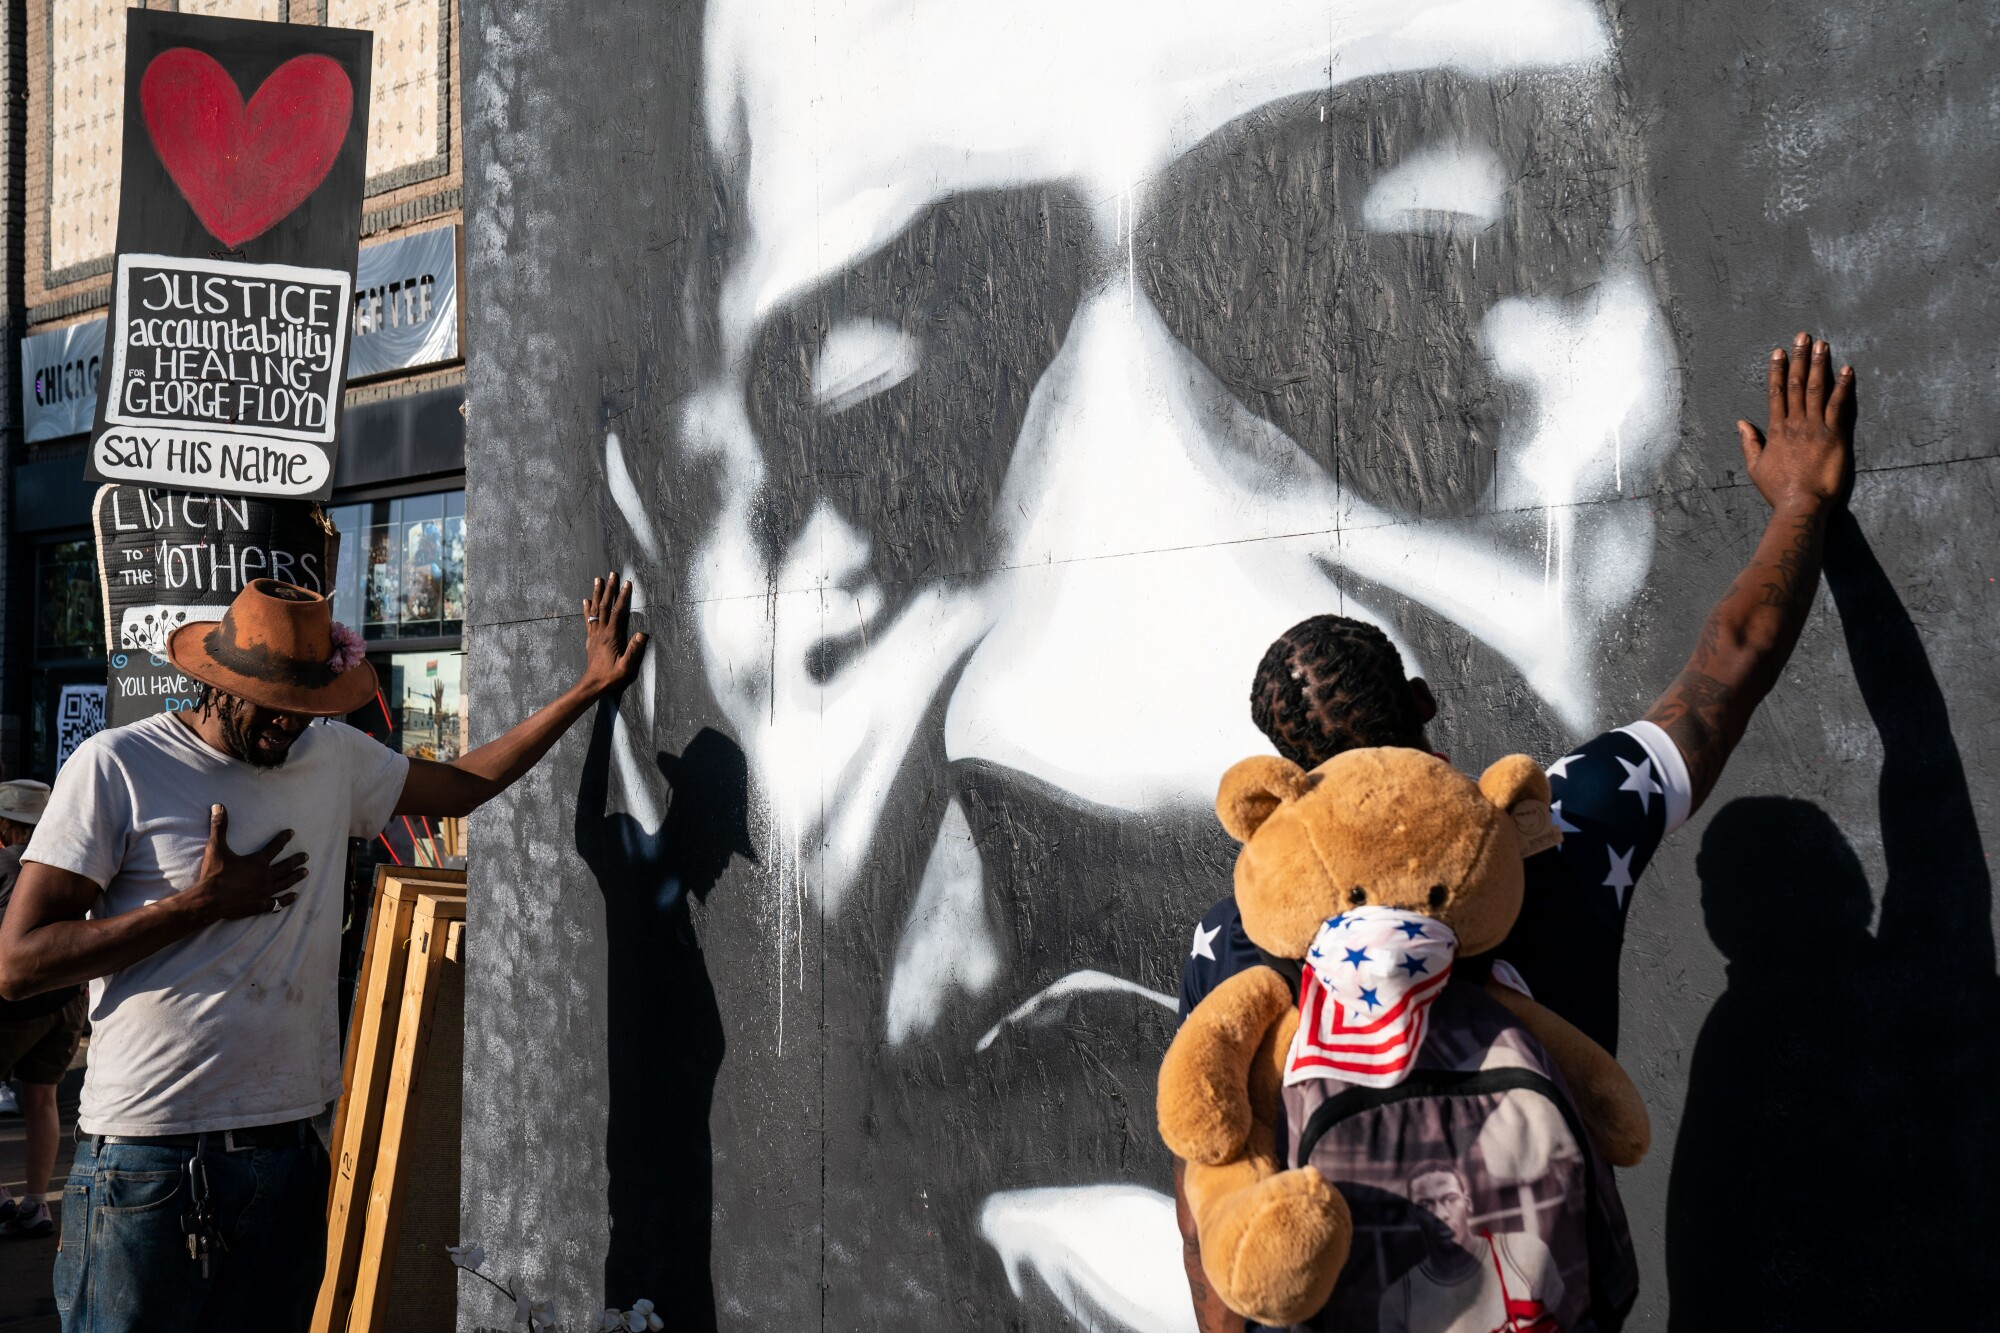 Two Black men place their hands on a mural depicting George Floyd